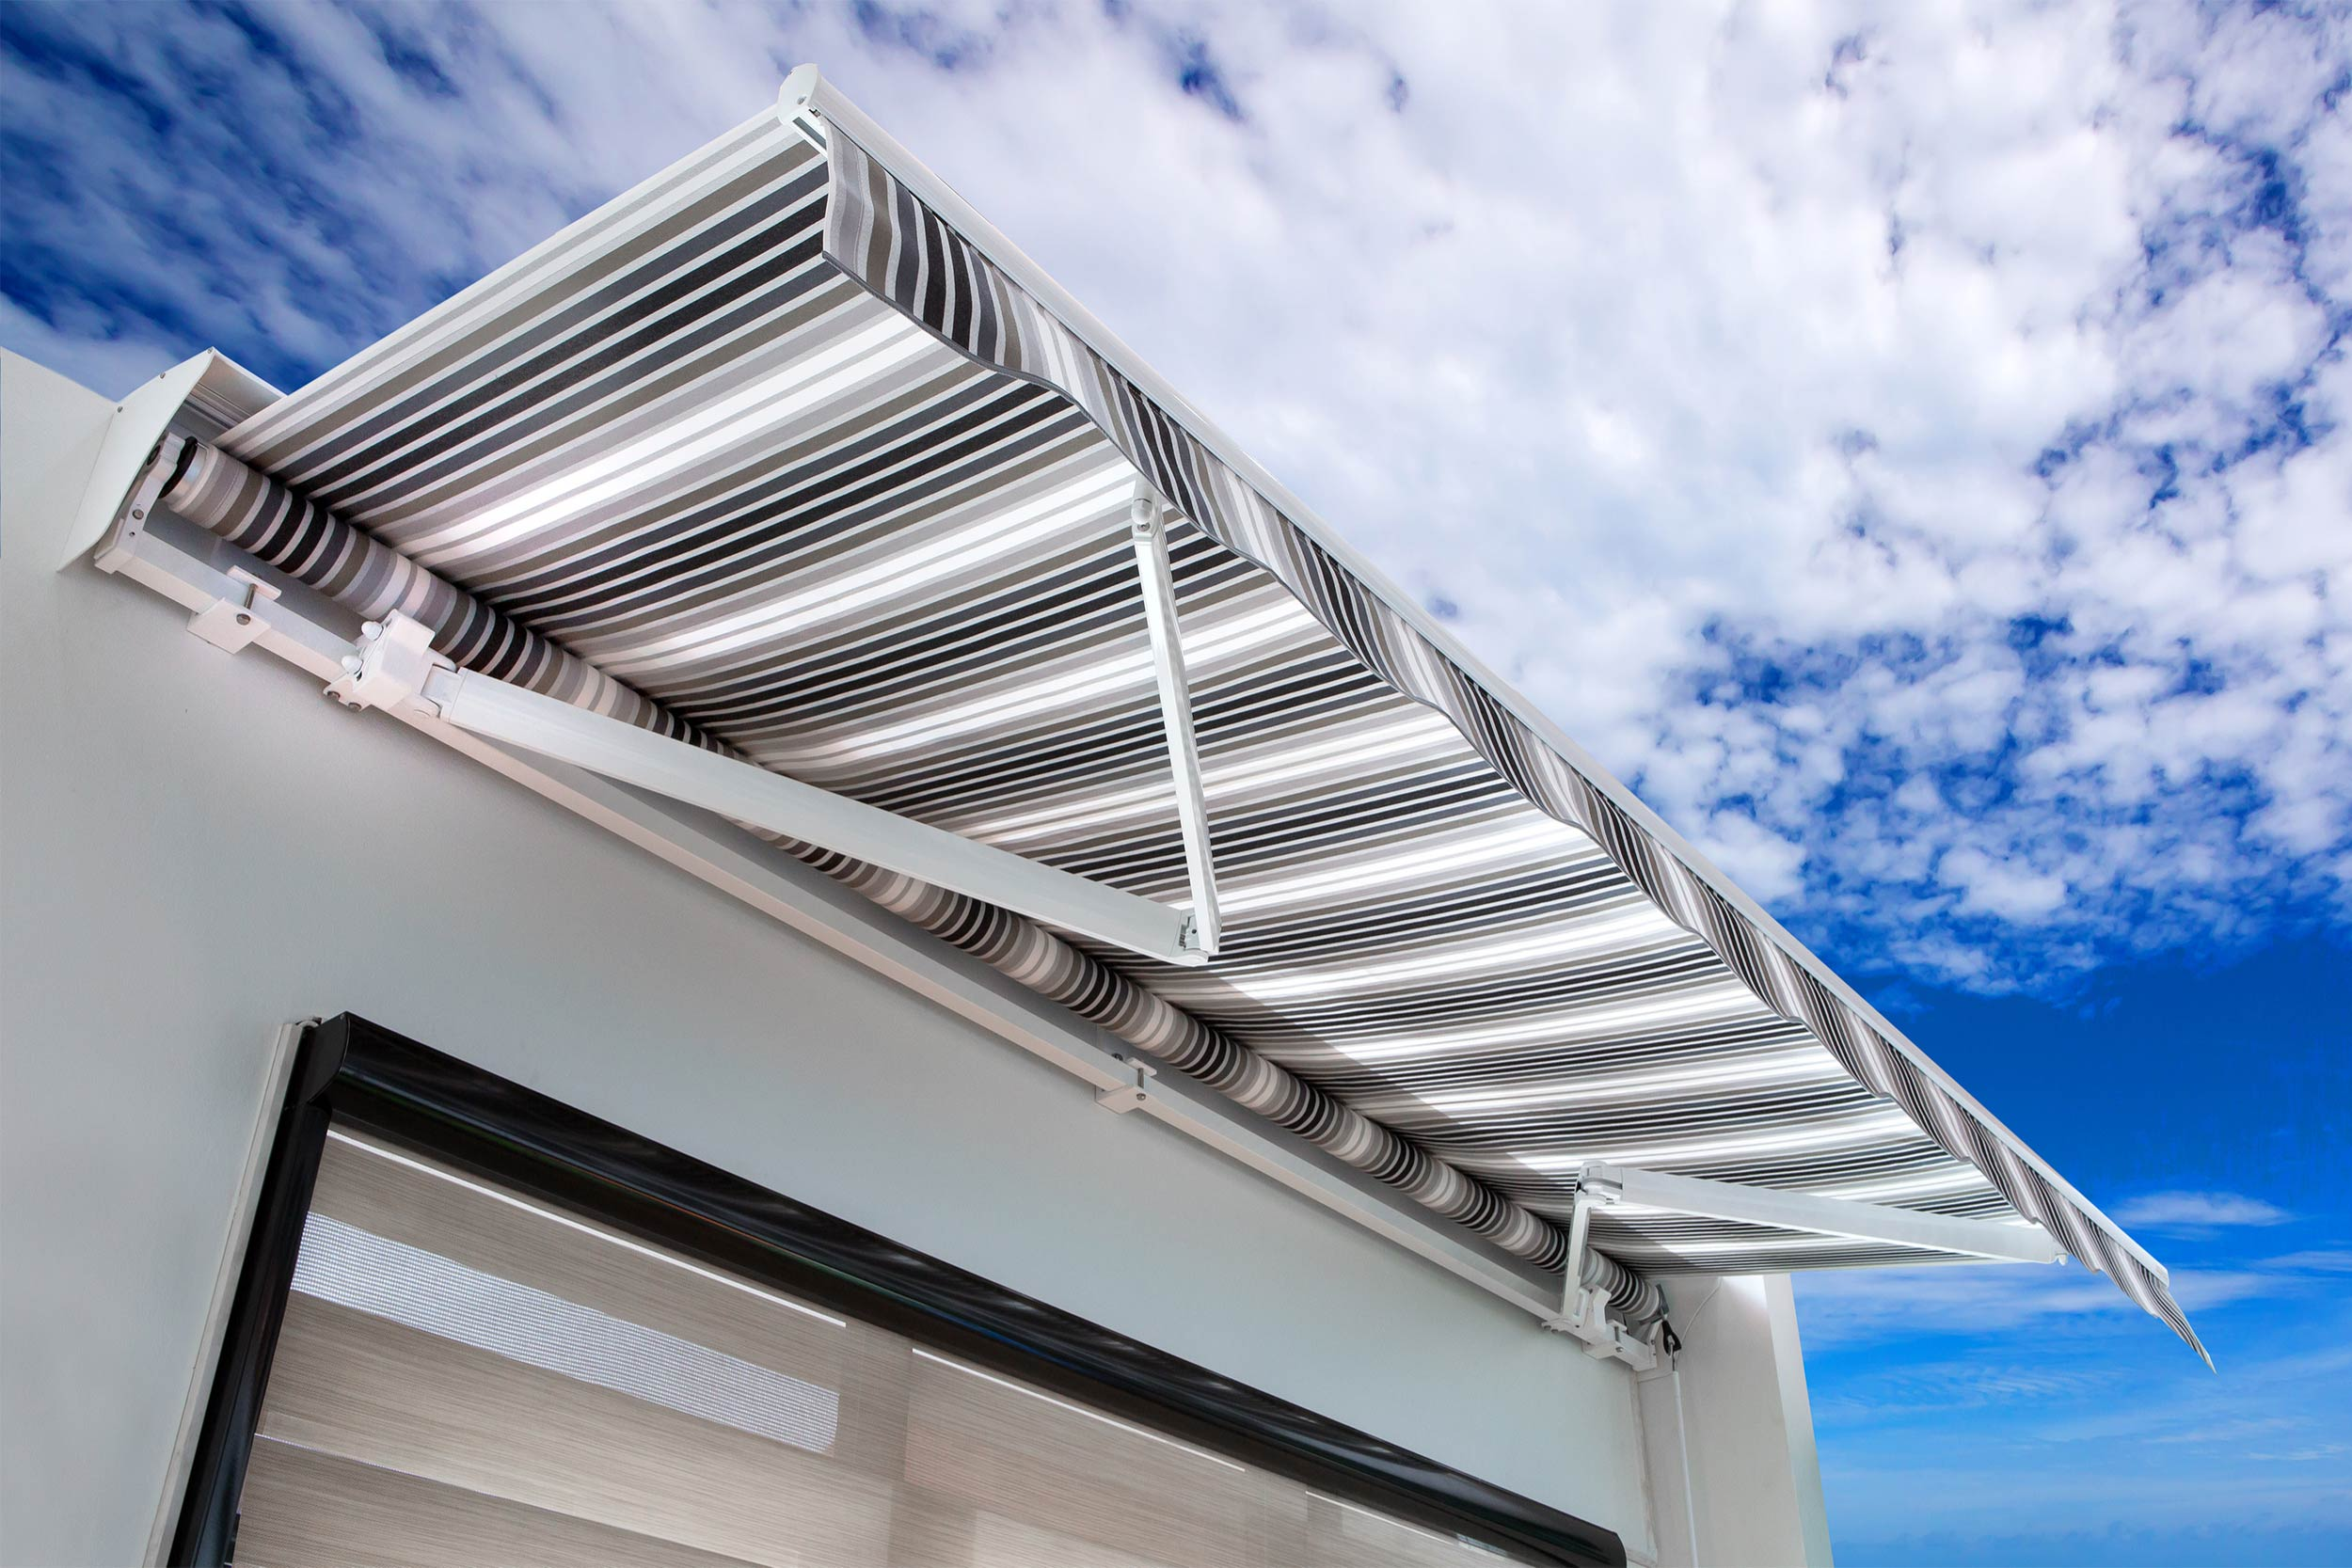 awnings quote template quote examples